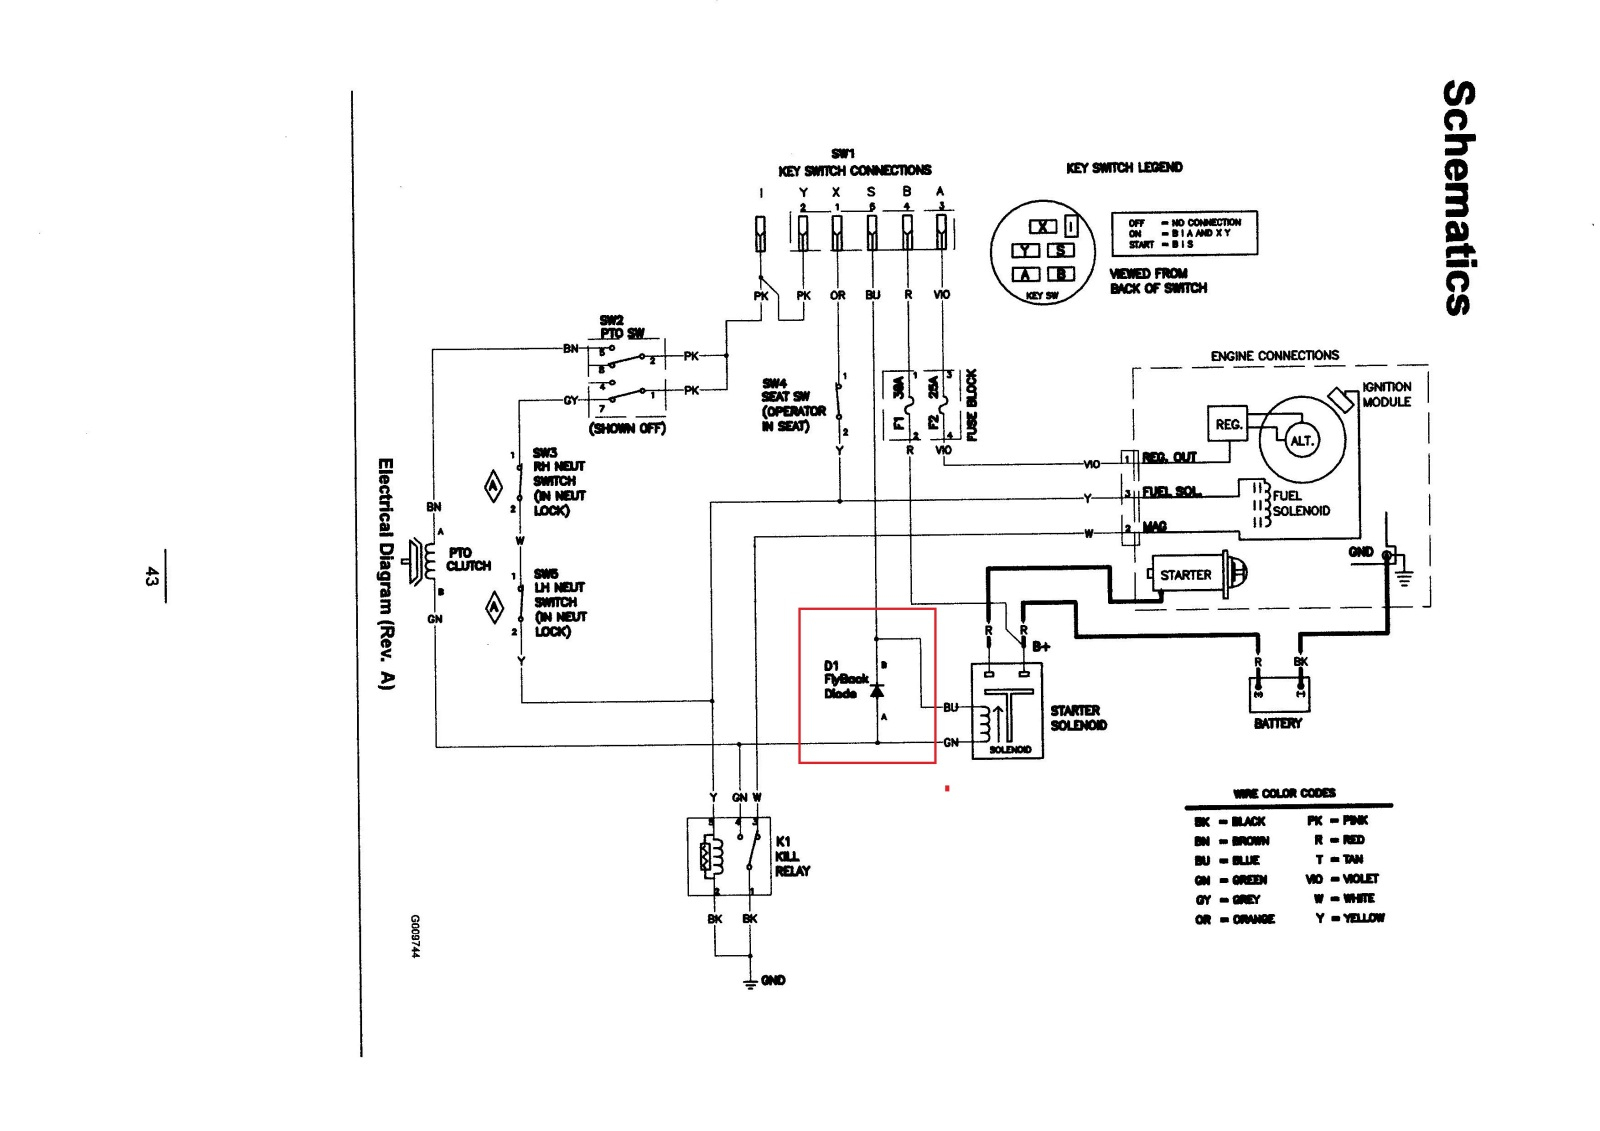 Miraculous Ford Tractor Ignition Switch Wiring Diagram Wirings Diagram Wiring Cloud Battdienstapotheekhoekschewaardnl